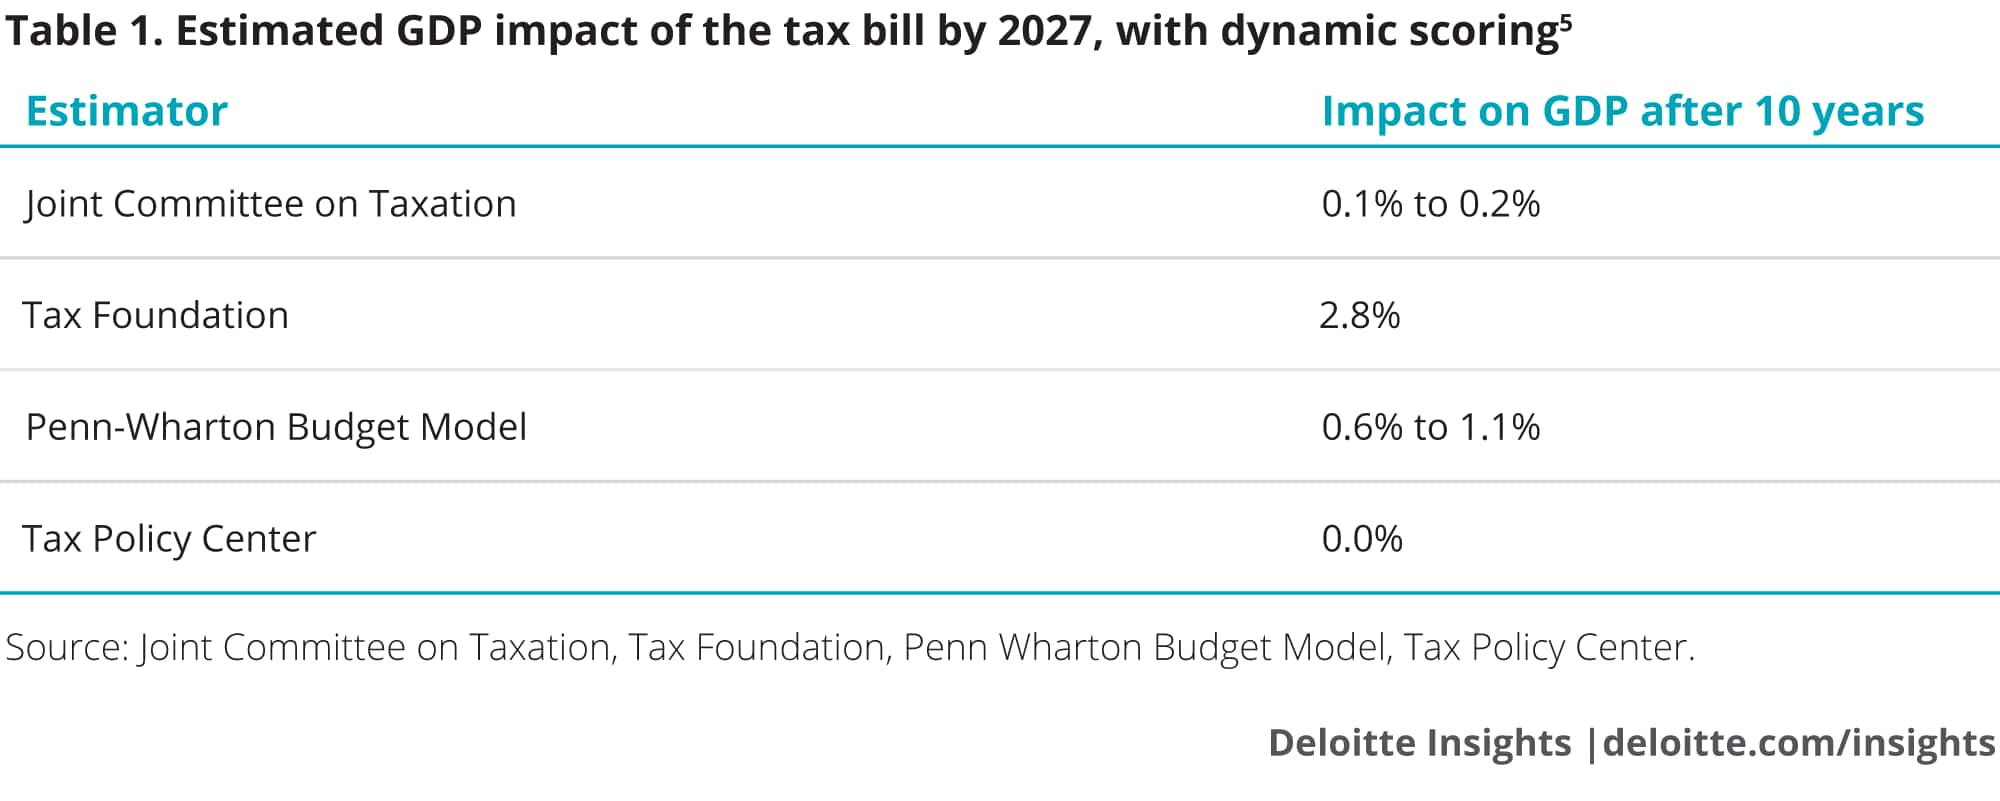 Estimated GDP impact of the tax bill by 2027, with dynamic scoring